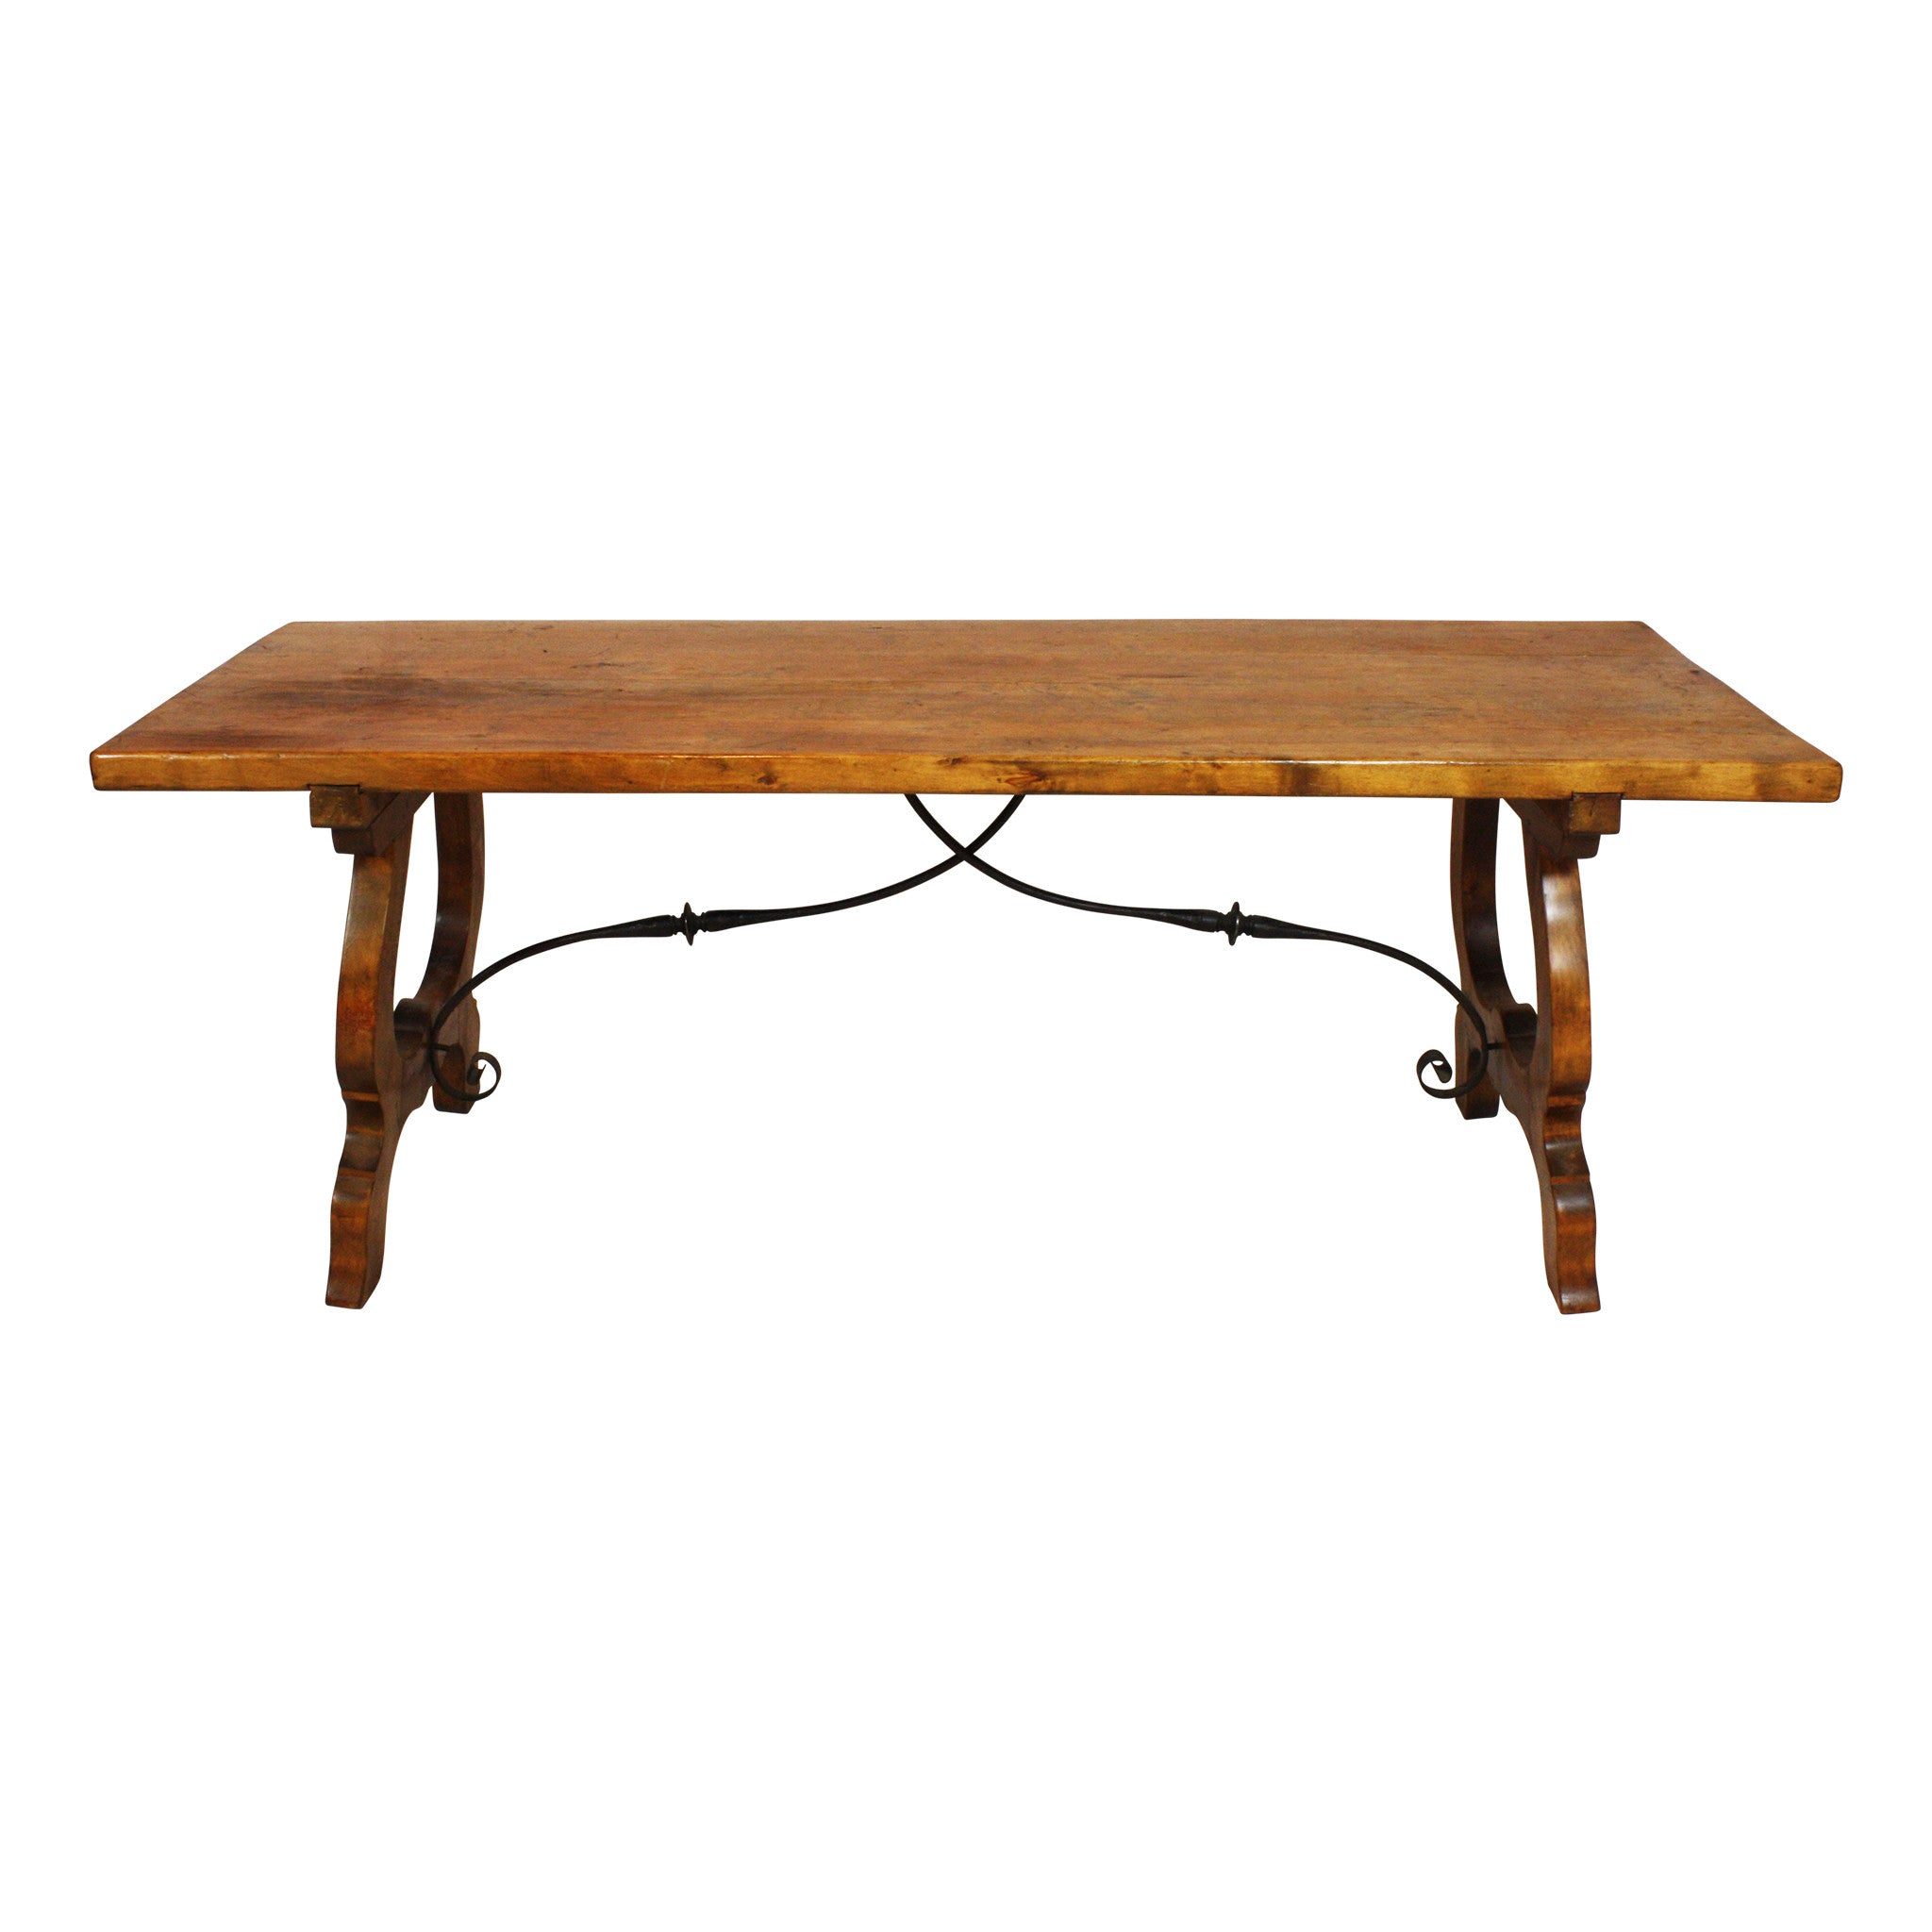 ski-country-antiques - Spanish Oak Table with Cast Iron Scroll Work